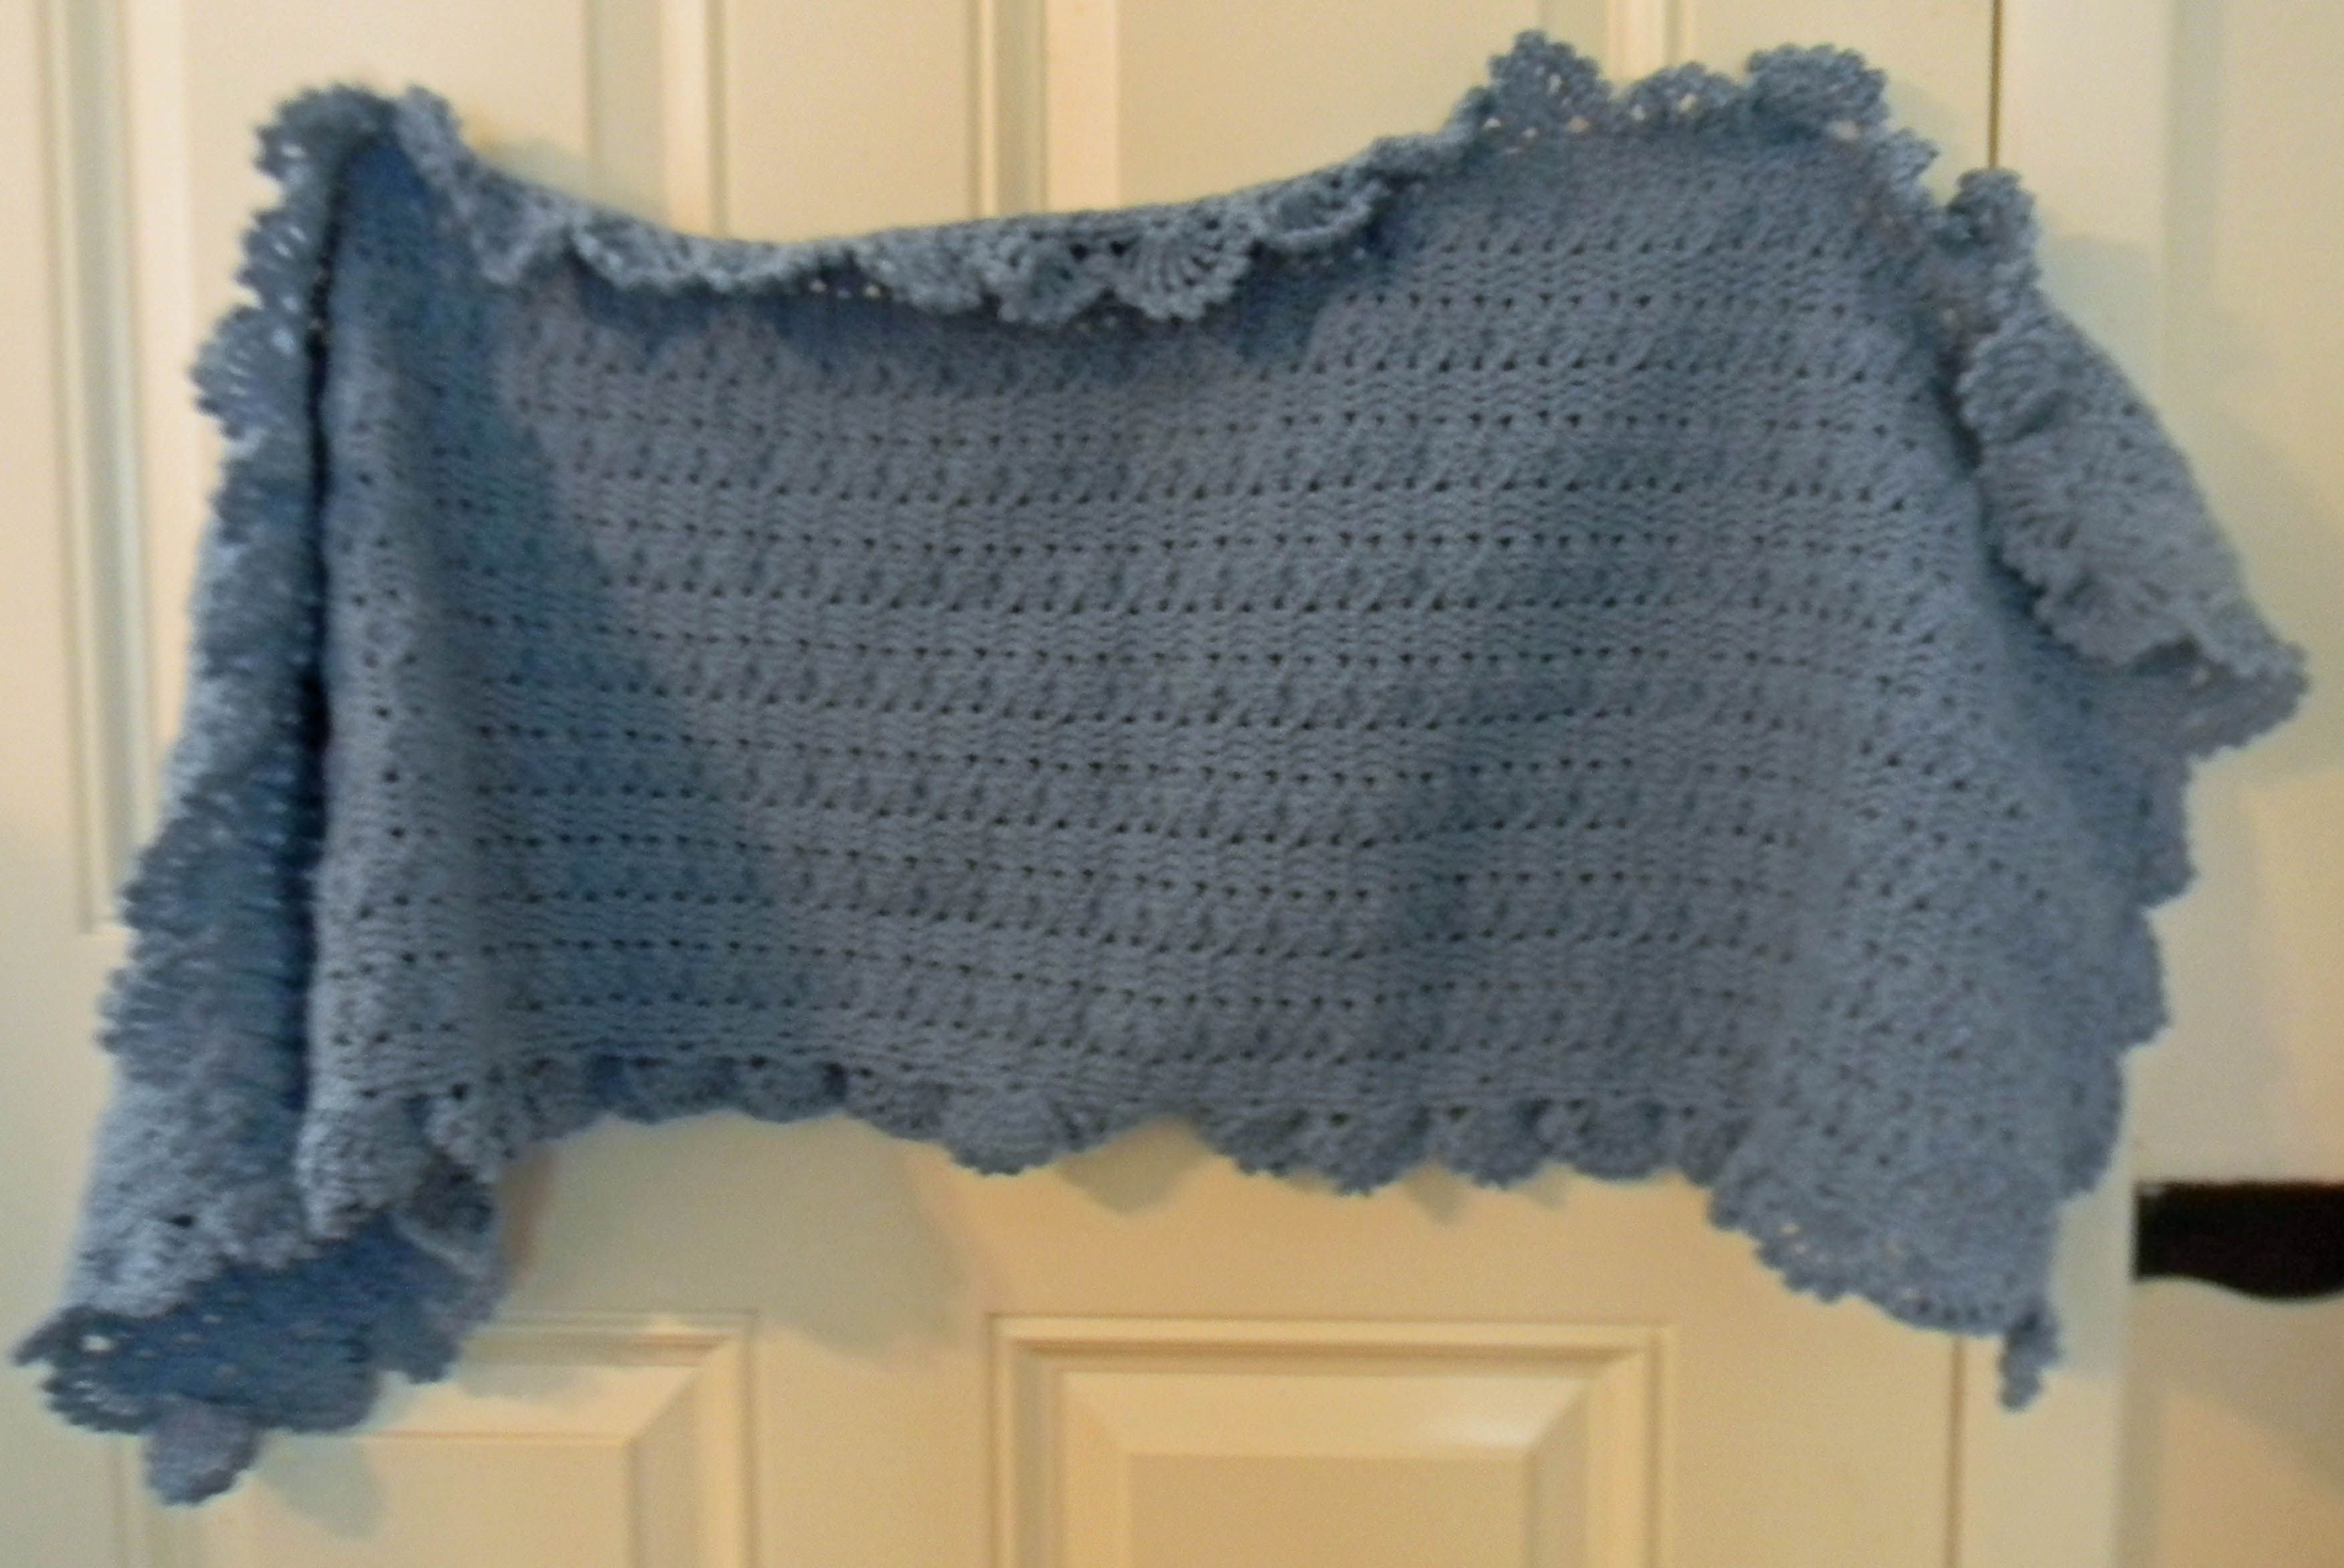 Free Easy Crochet Patterns For Prayer Shawls : Free Easy Crochet Prayer Shawl Patterns images